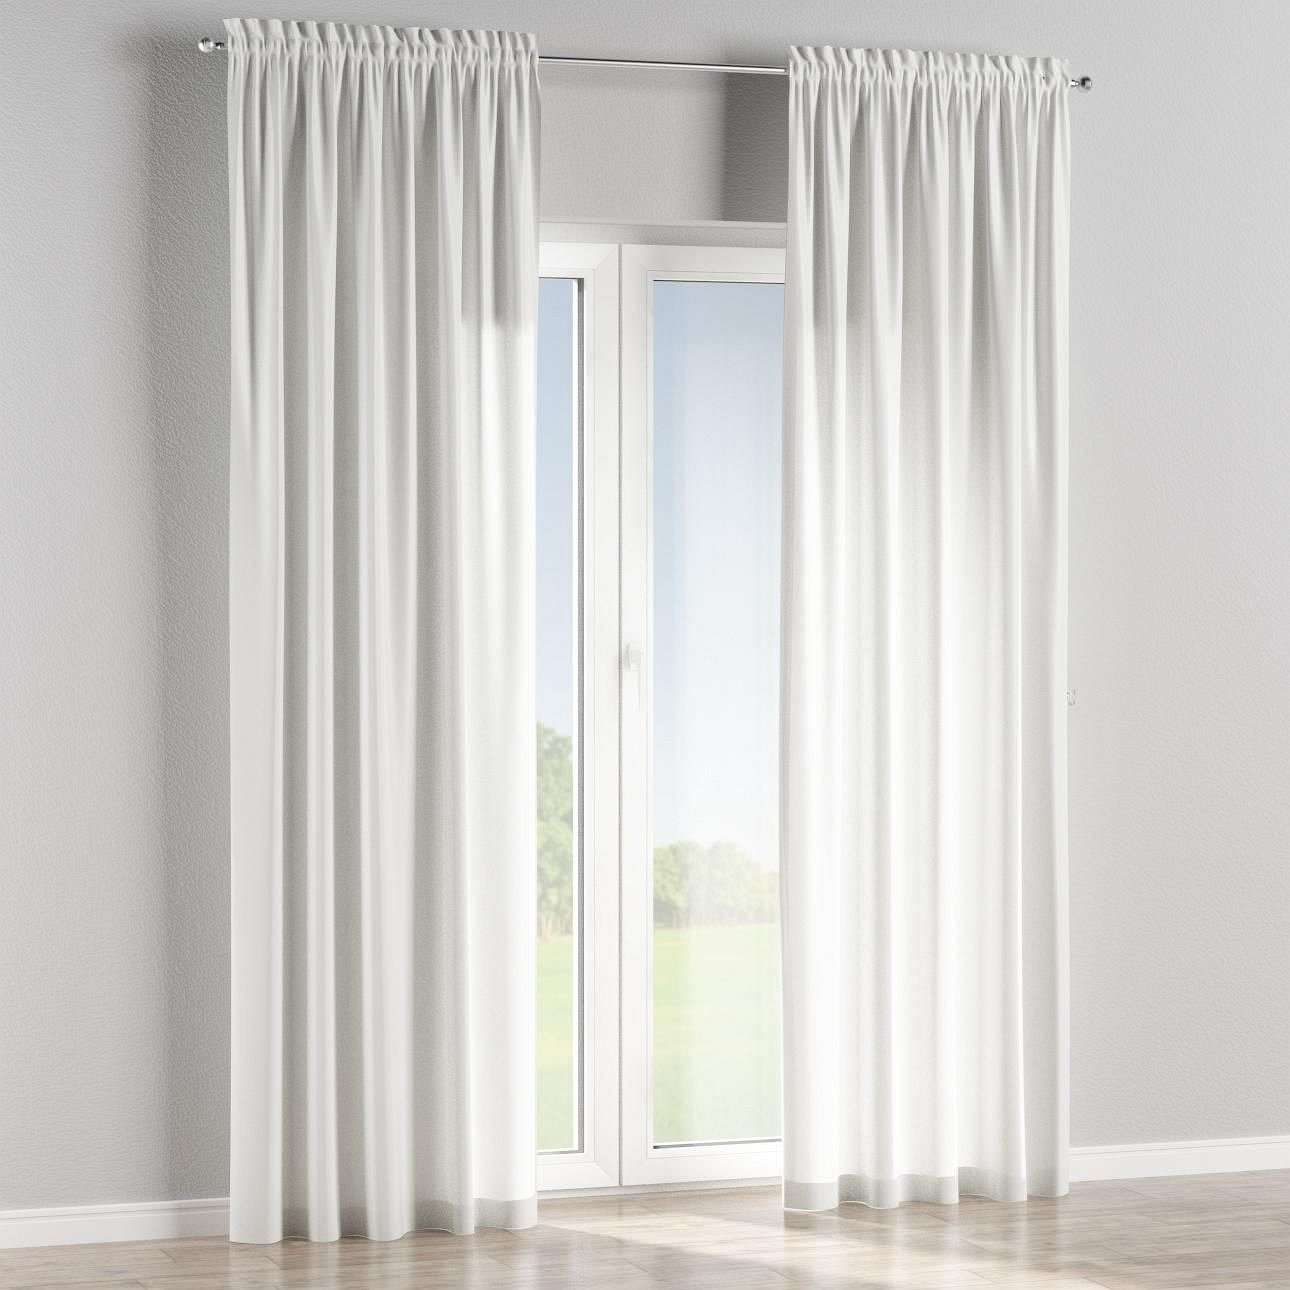 Slot and frill lined curtains in collection Norge, fabric: 140-83